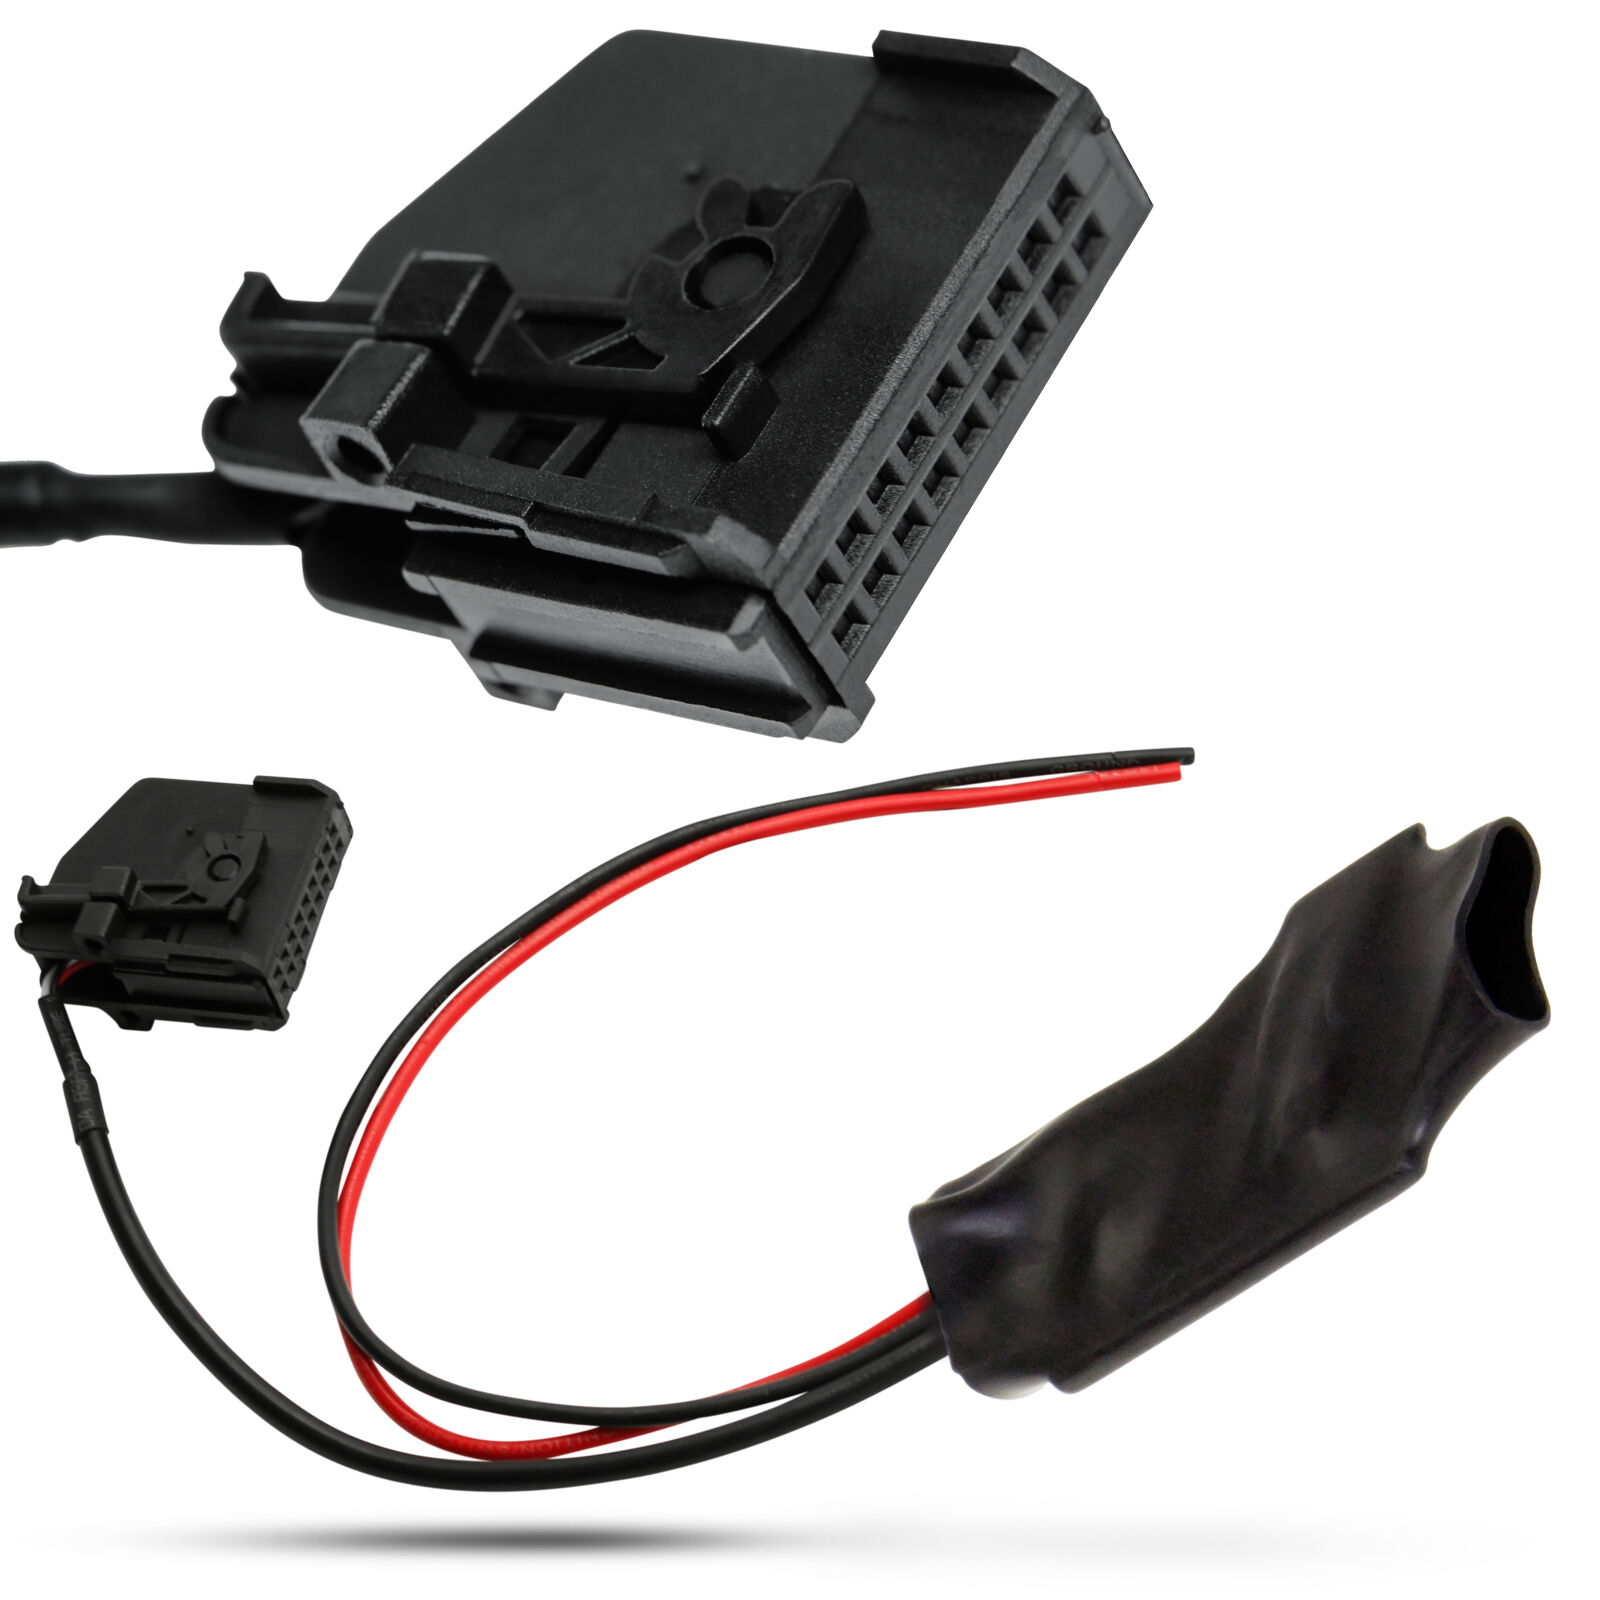 Bluetooth aux in adapter verst rker filter f r for Mercedes benz bluetooth adapter installation